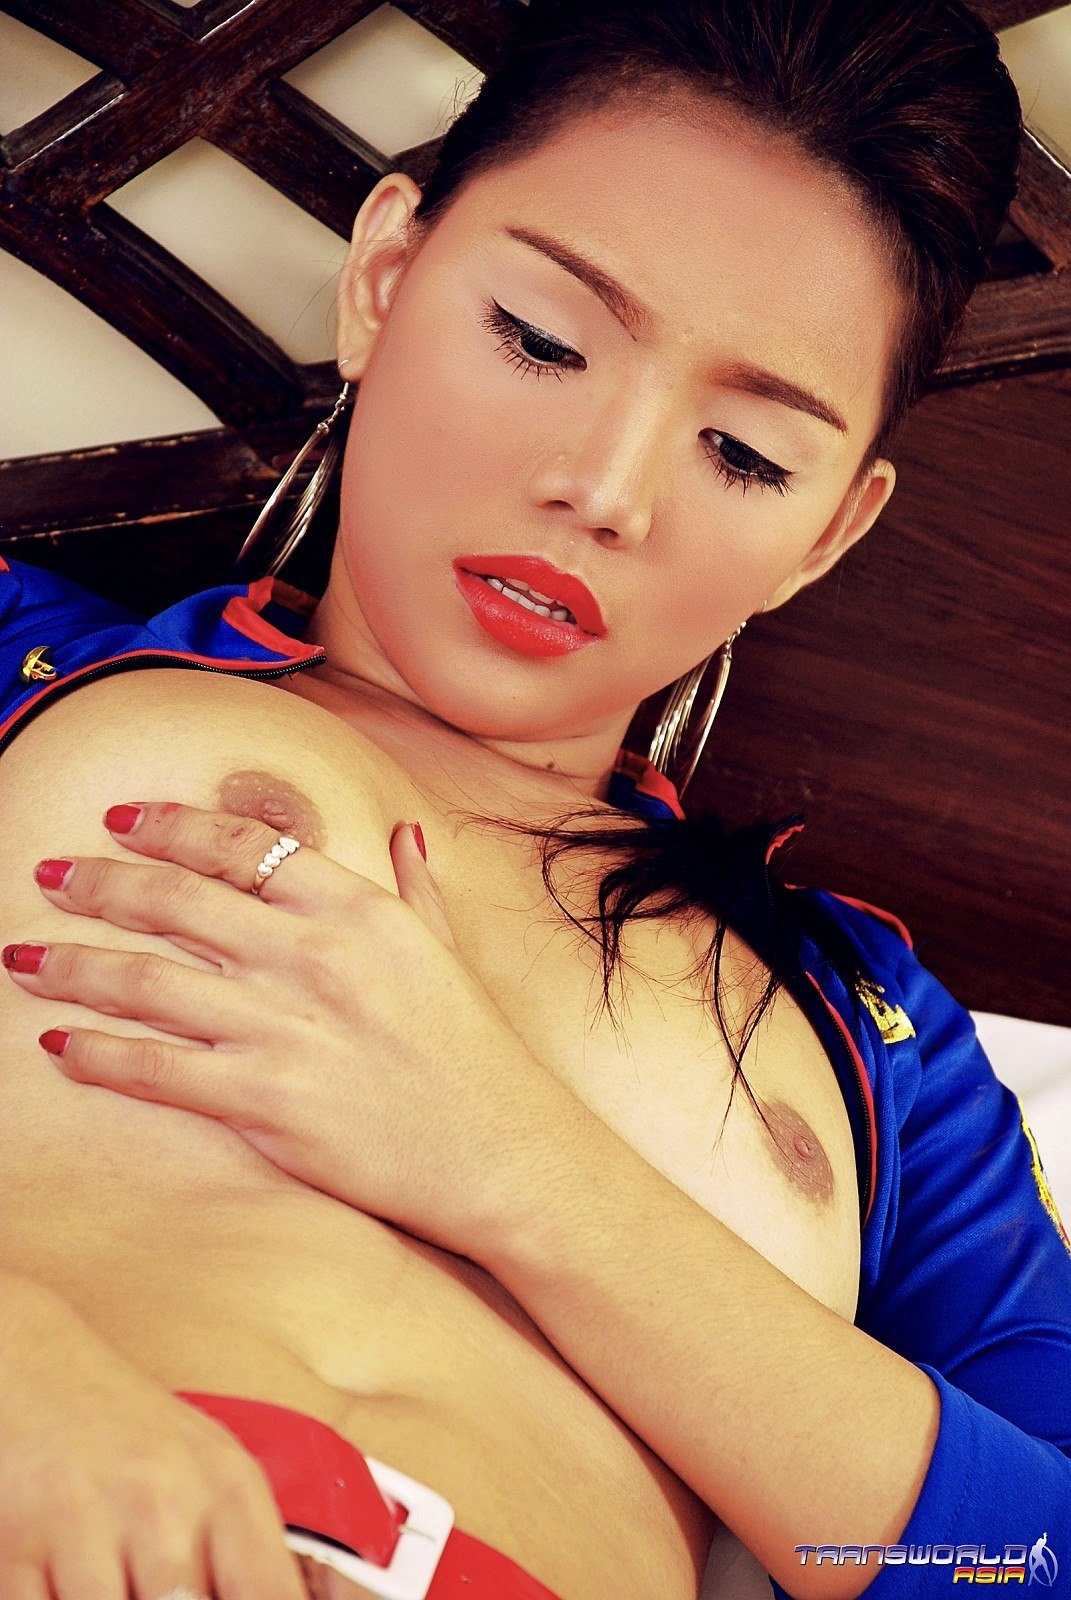 What A GORGEOUS Thai Transexual She Is!